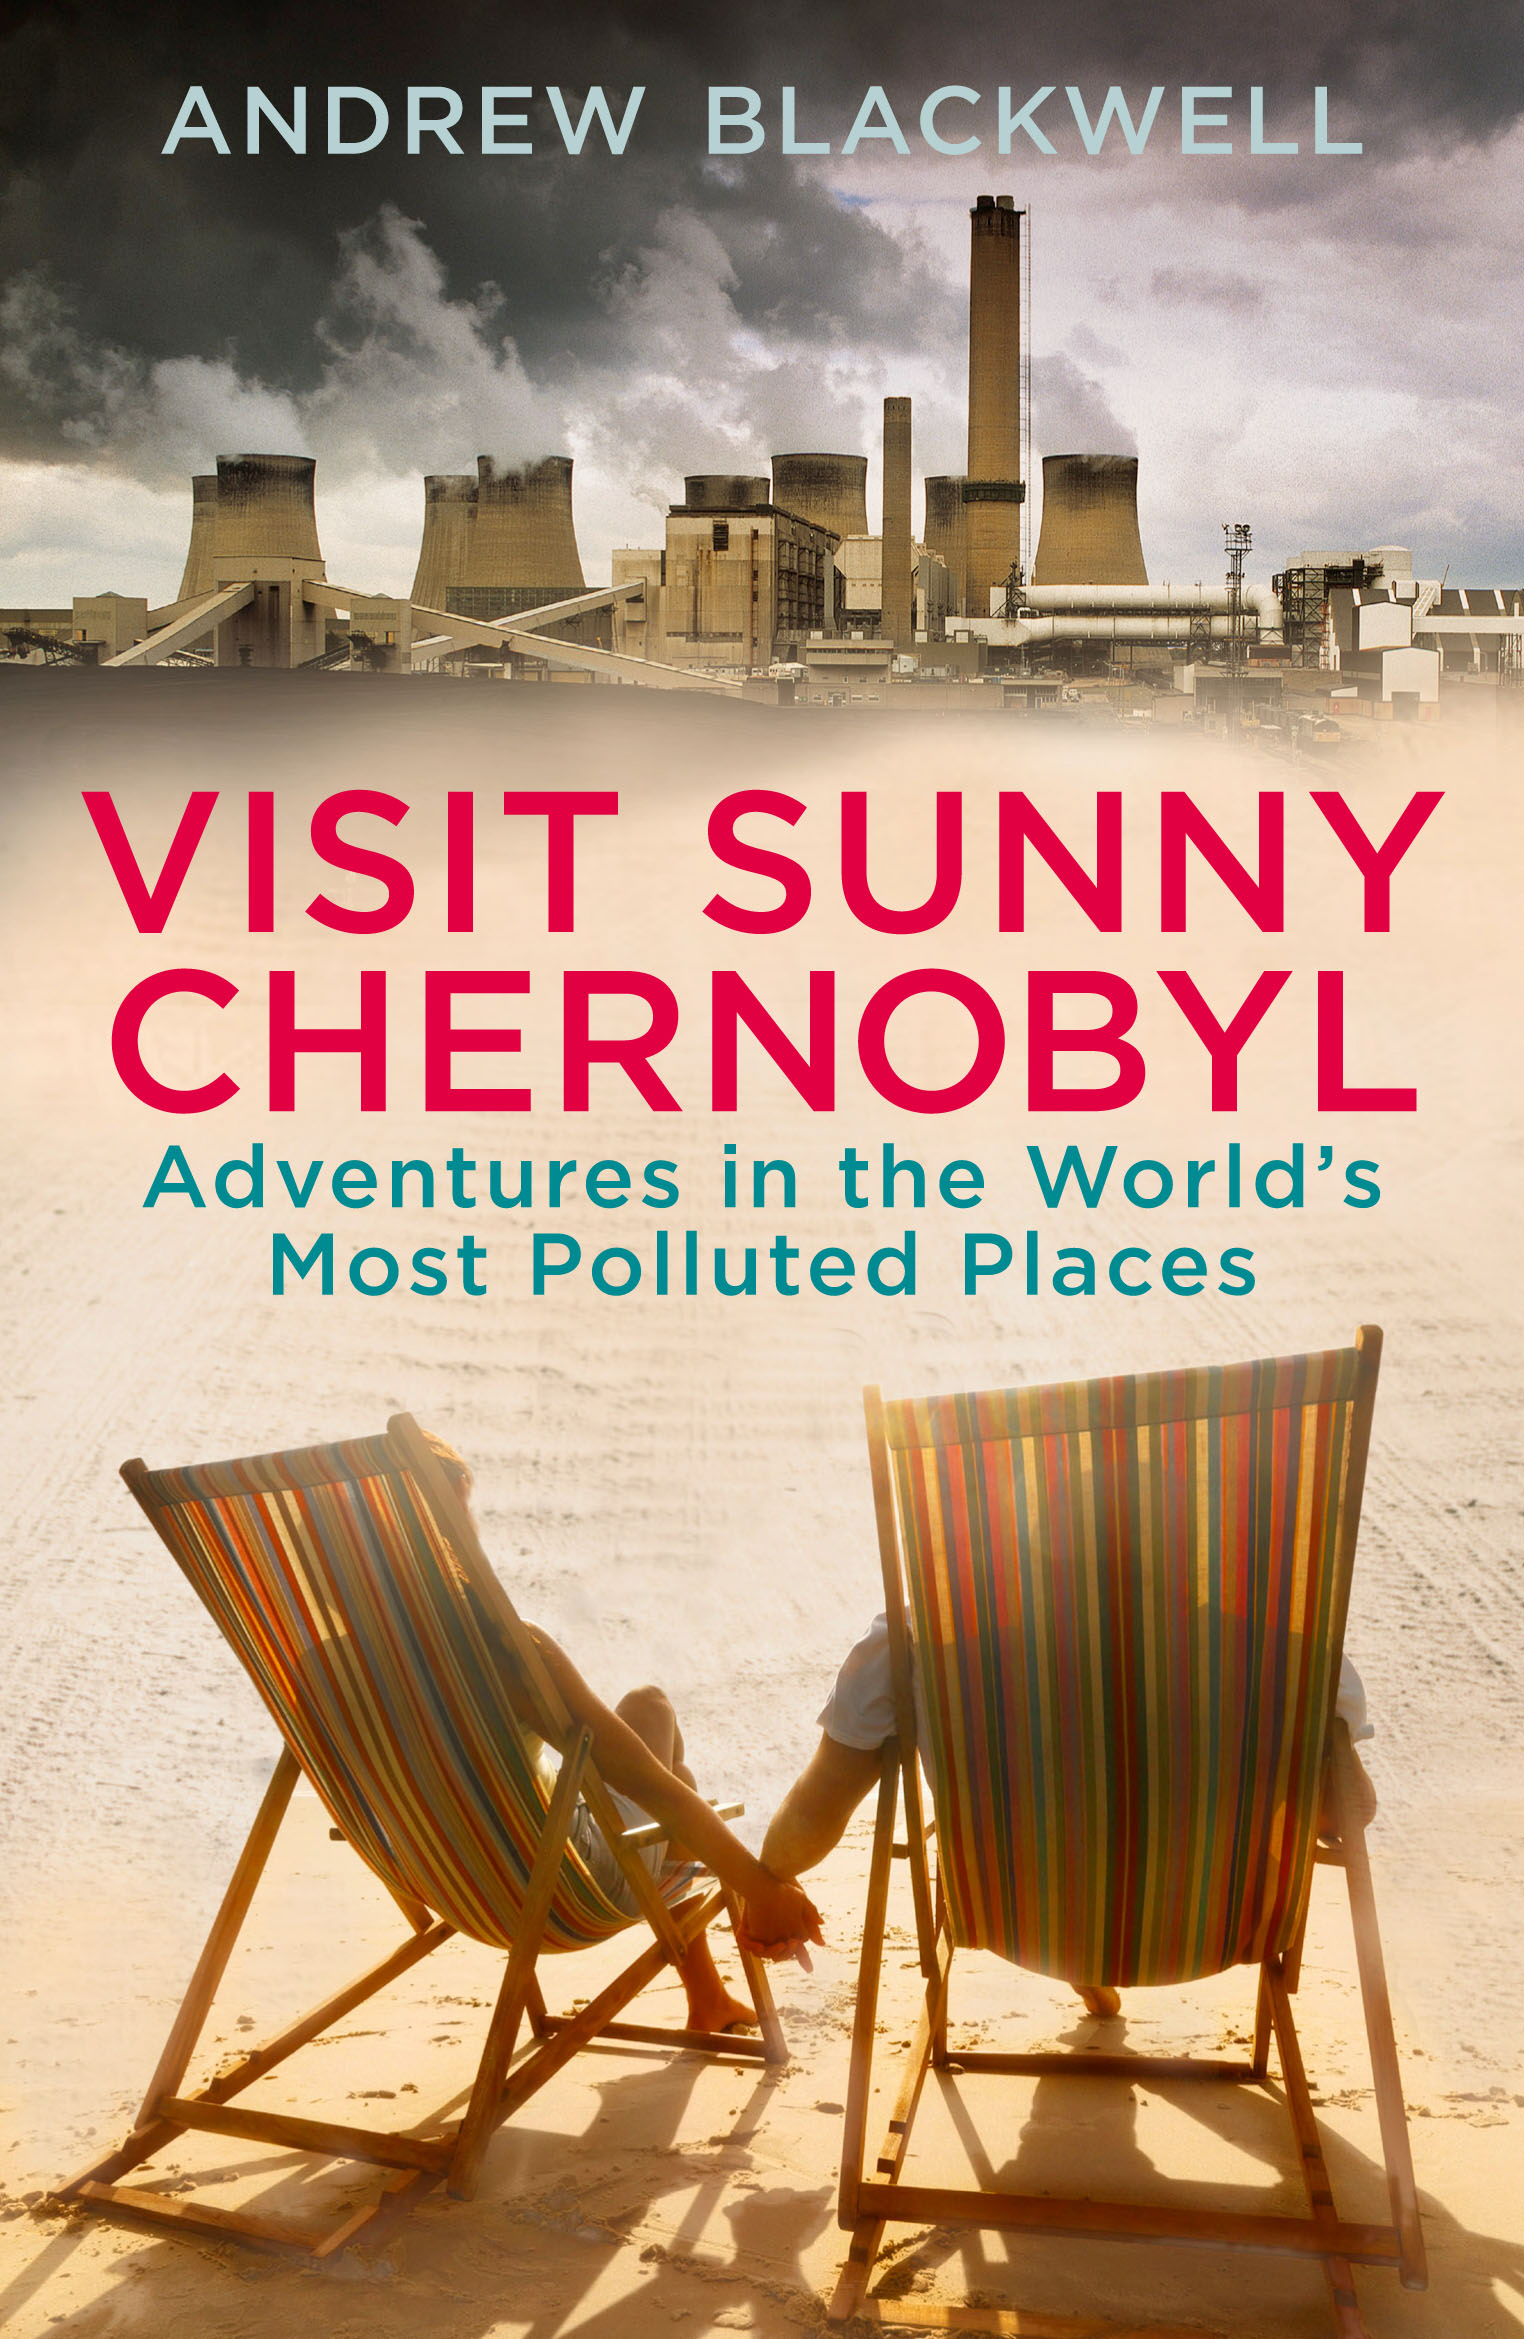 Visit Sunny Chernobyl Adventures in the World's Most Polluted Places